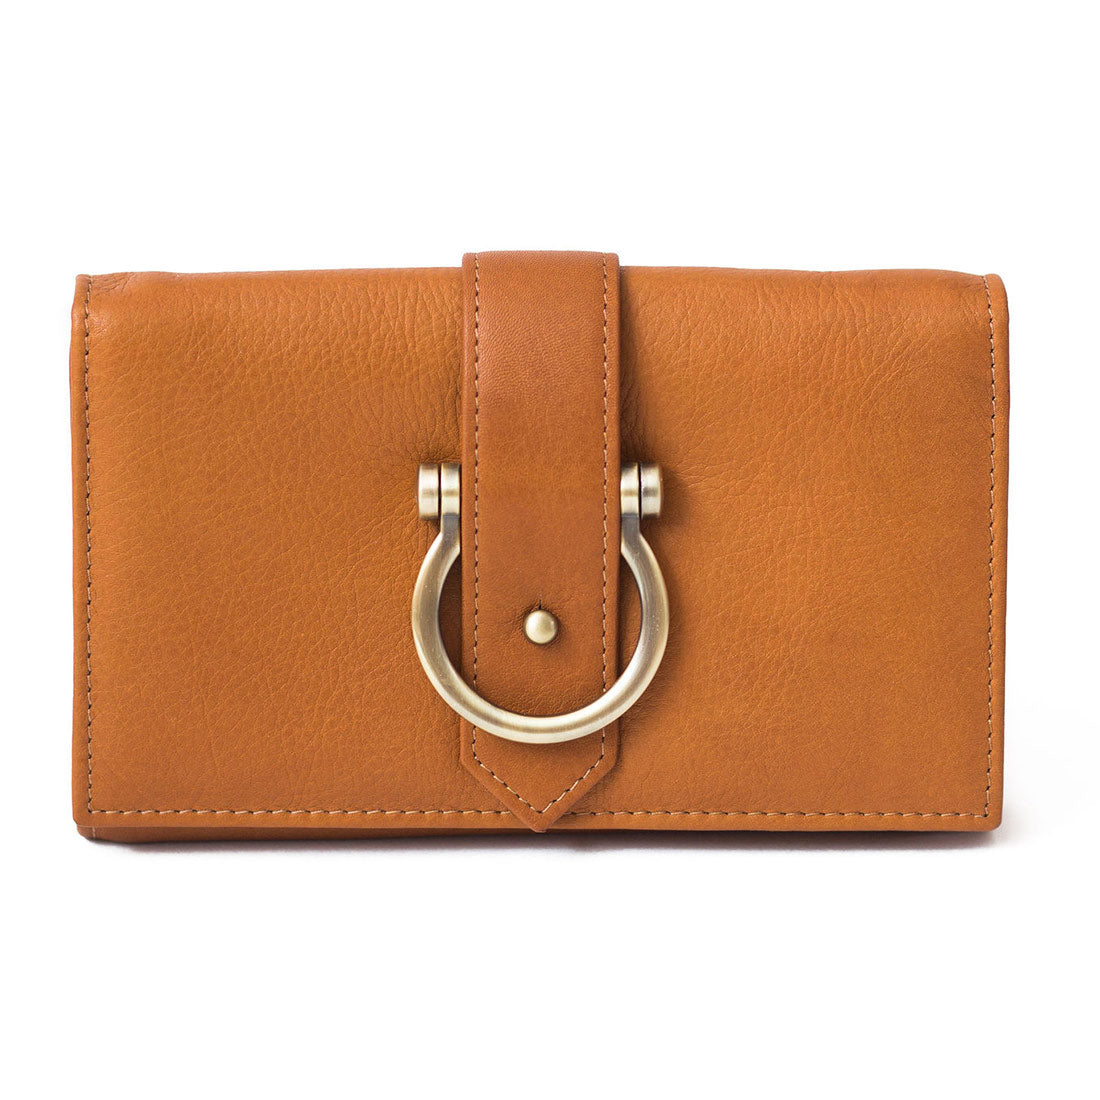 Staney Leather Crossbody Wristlet Wallet